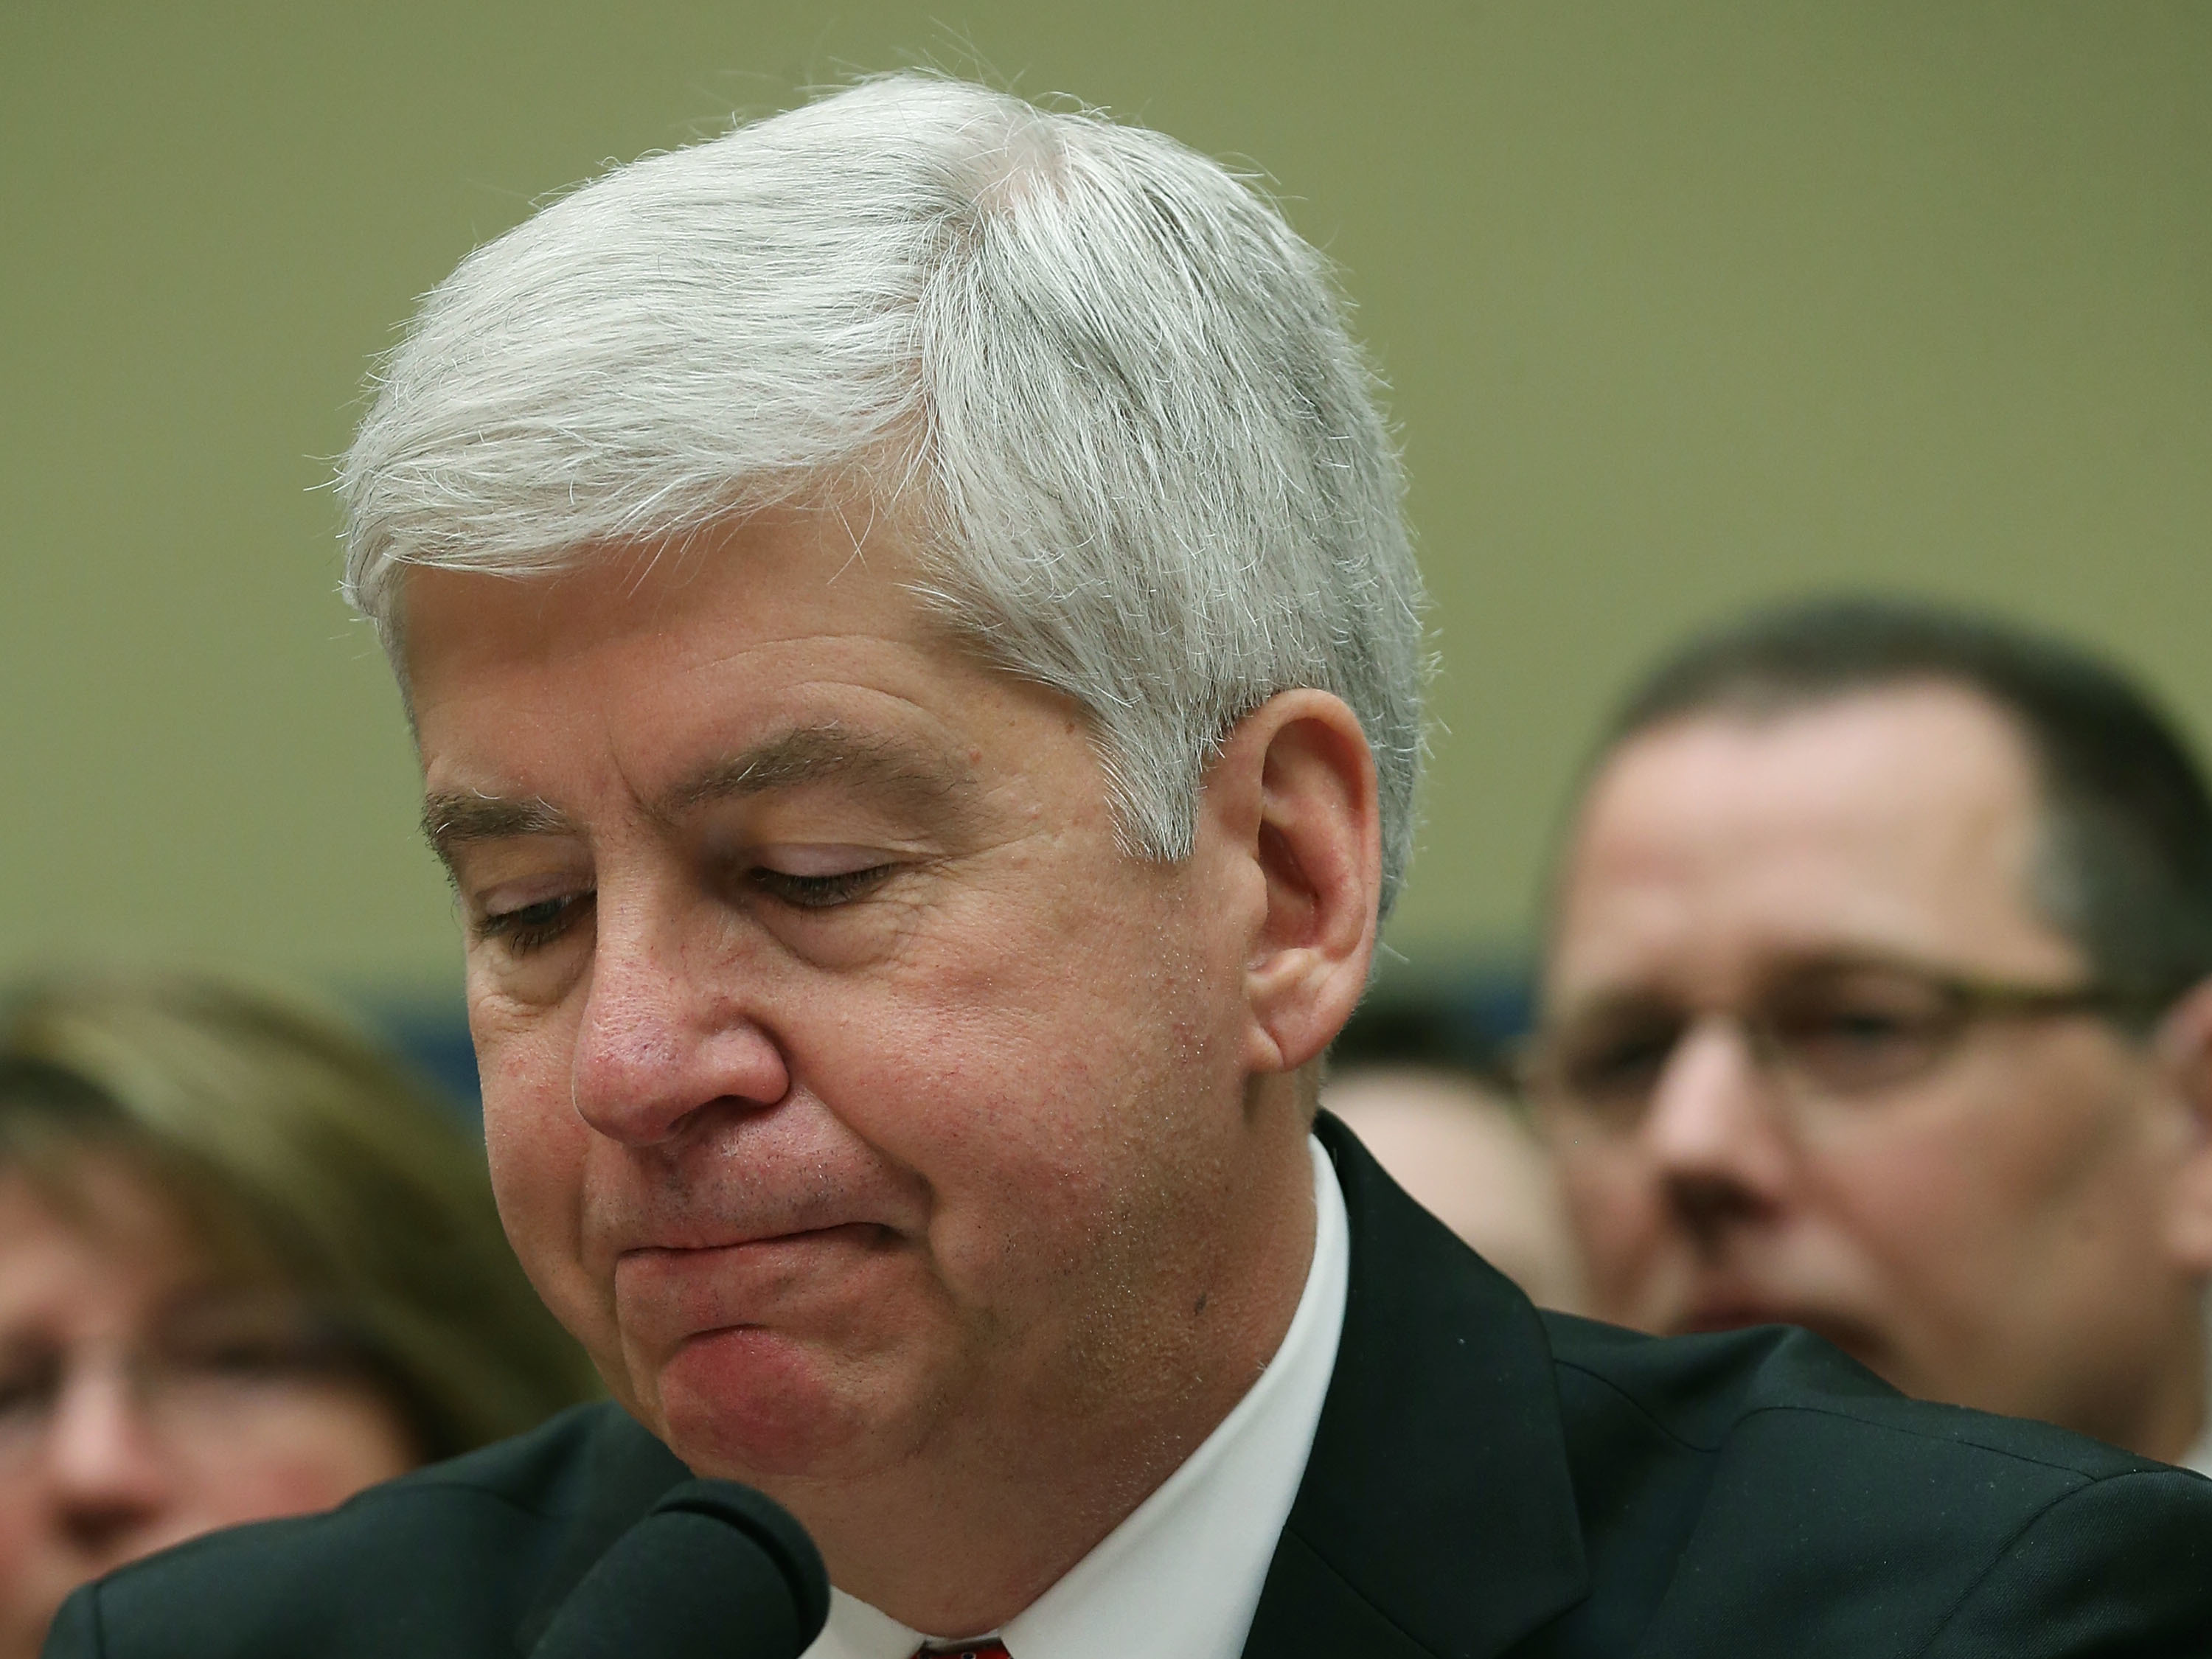 New Charges In Flint Water Crisis, Including Former Michigan Gov. Rick Snyder